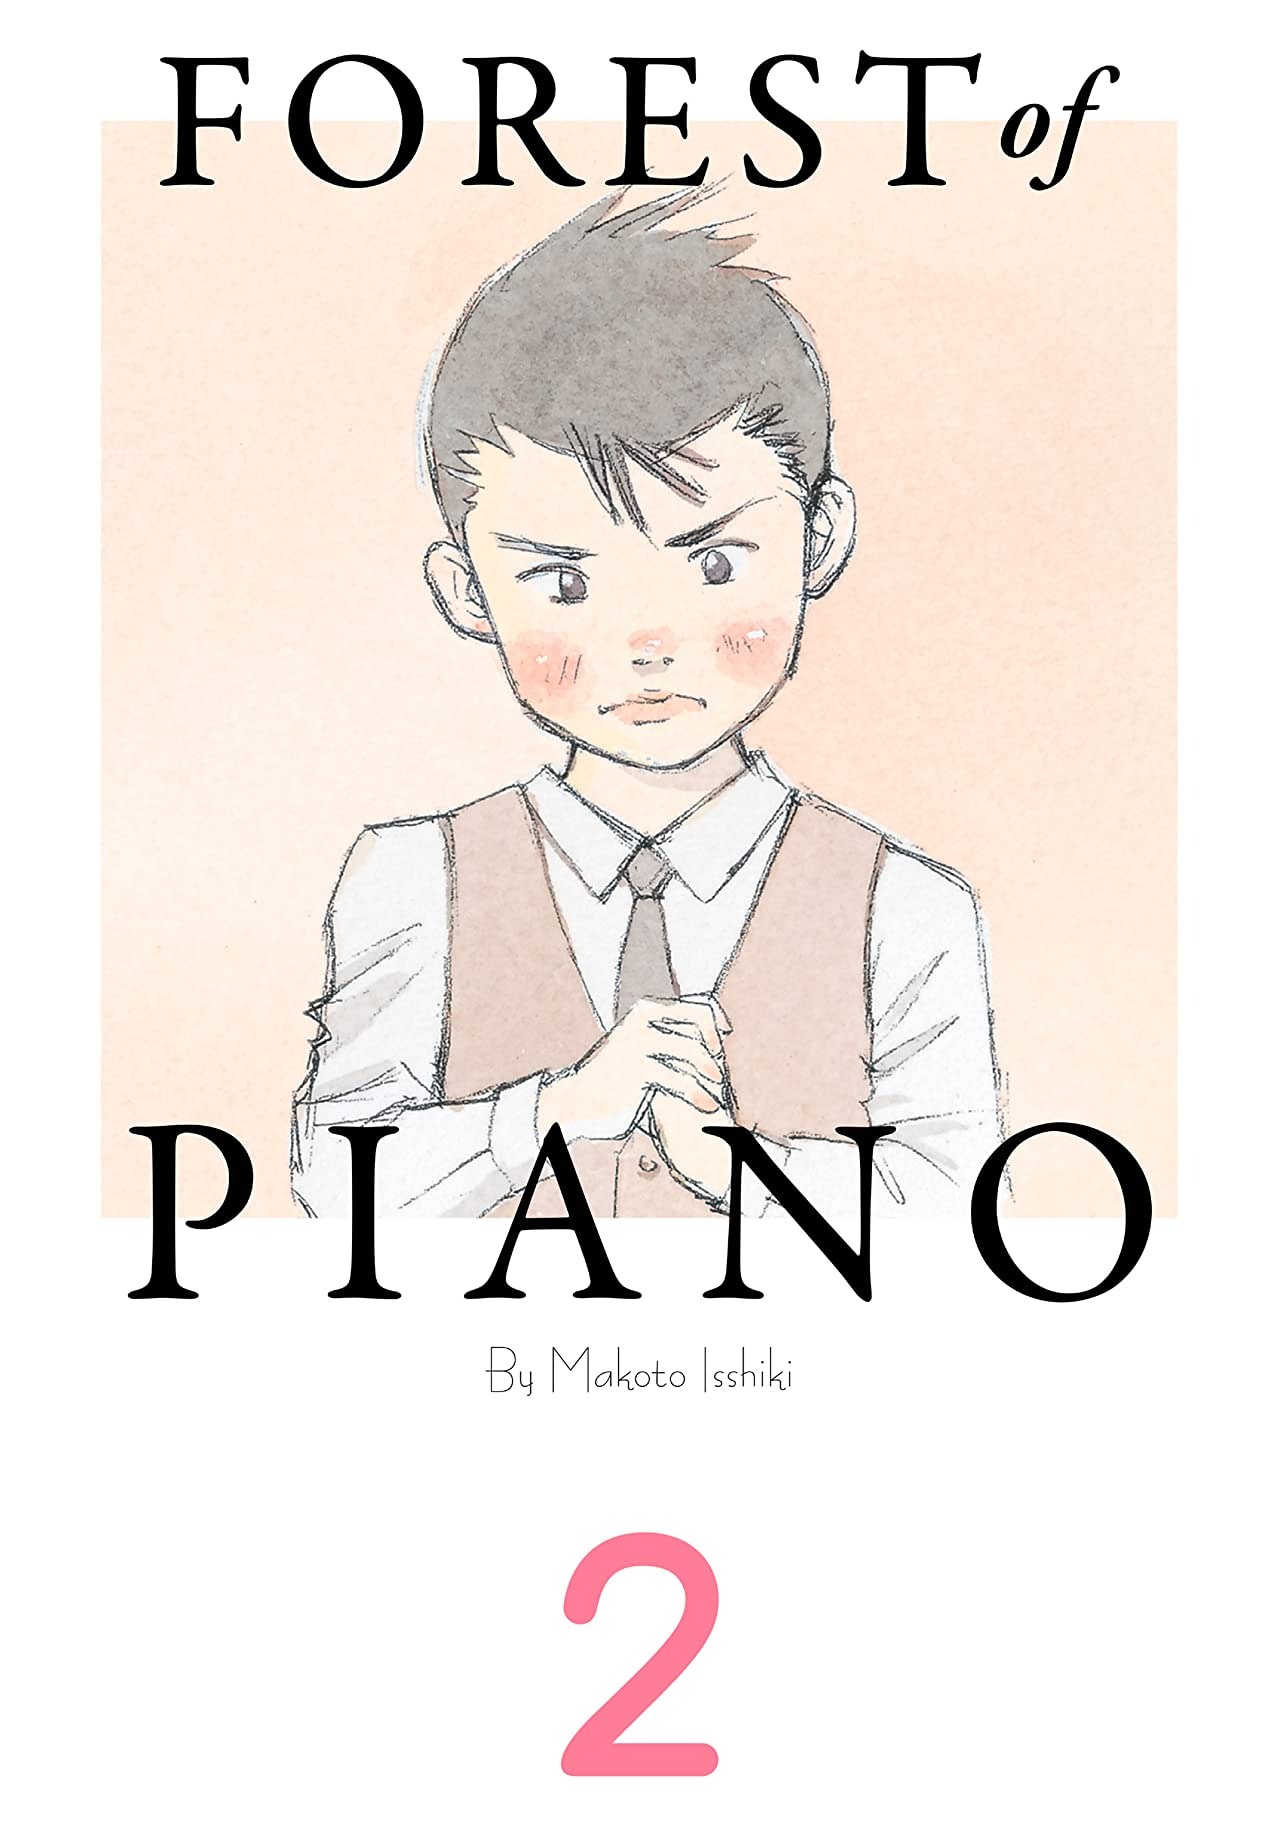 Forest of Piano Vol. 2